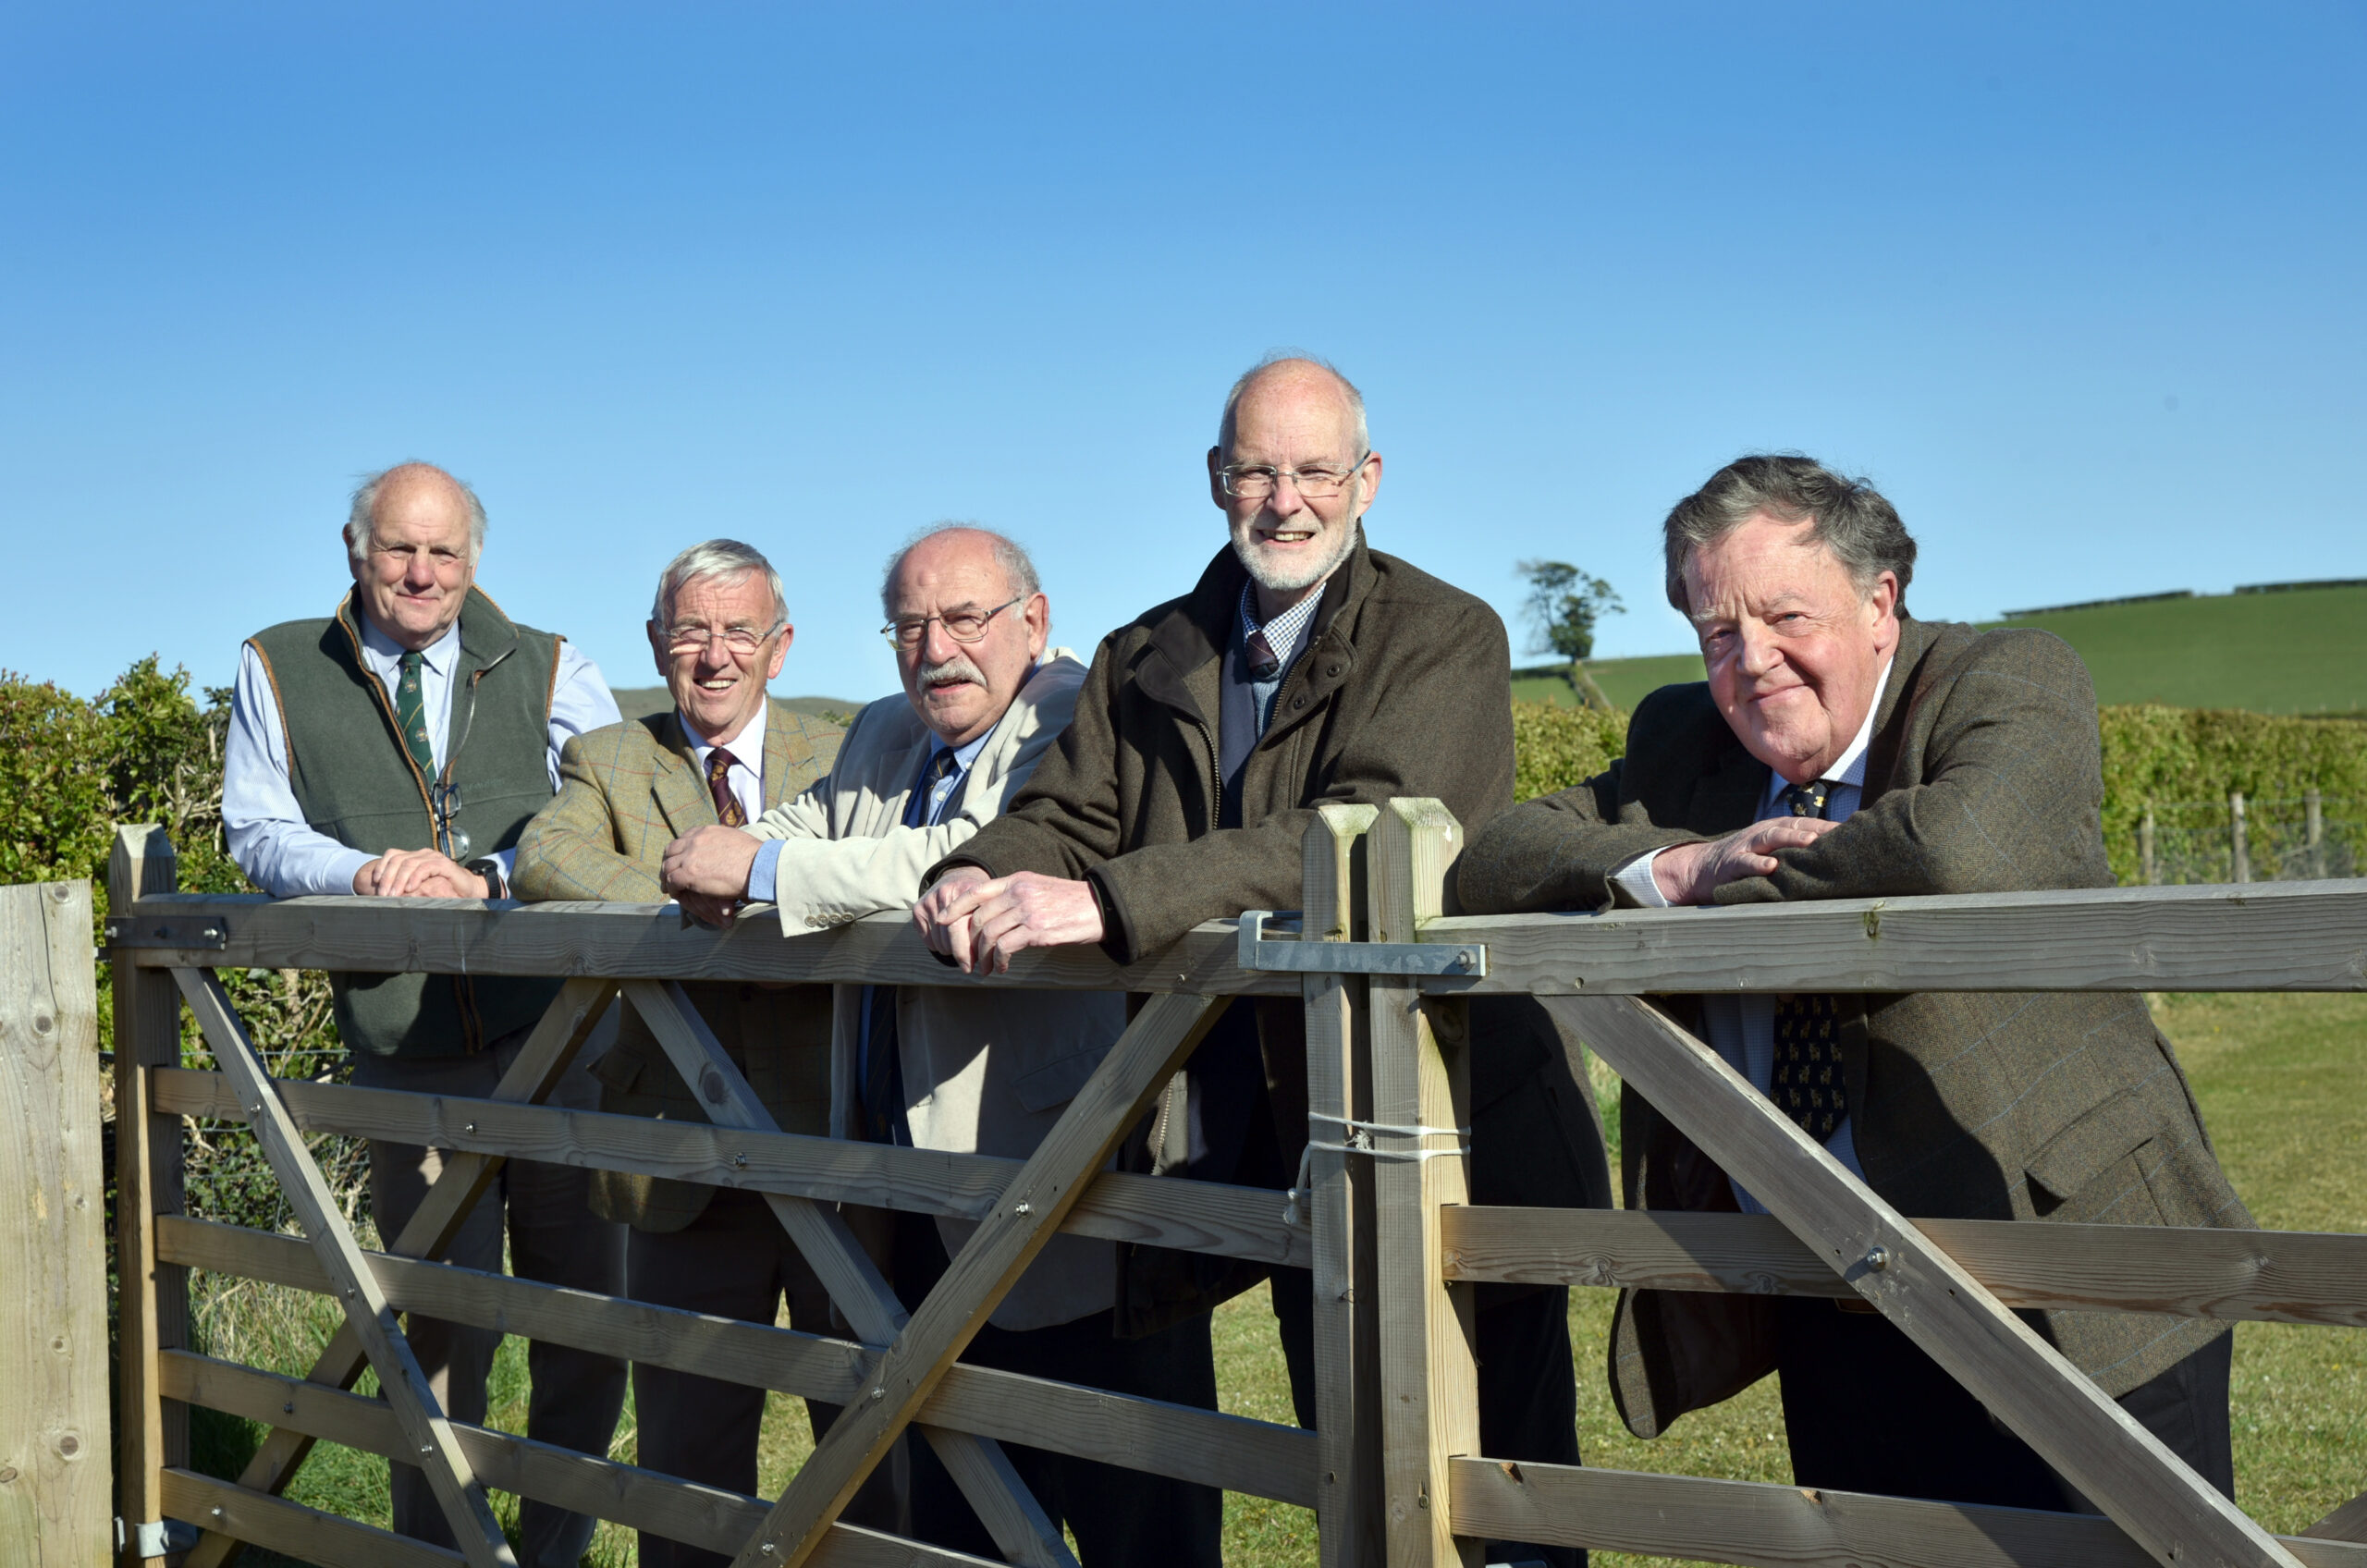 NR Training Directors Andrew Counsell, Alan Bowe, Professor Andrew Cobb, Andrew Bromley, Christopher Crewdson